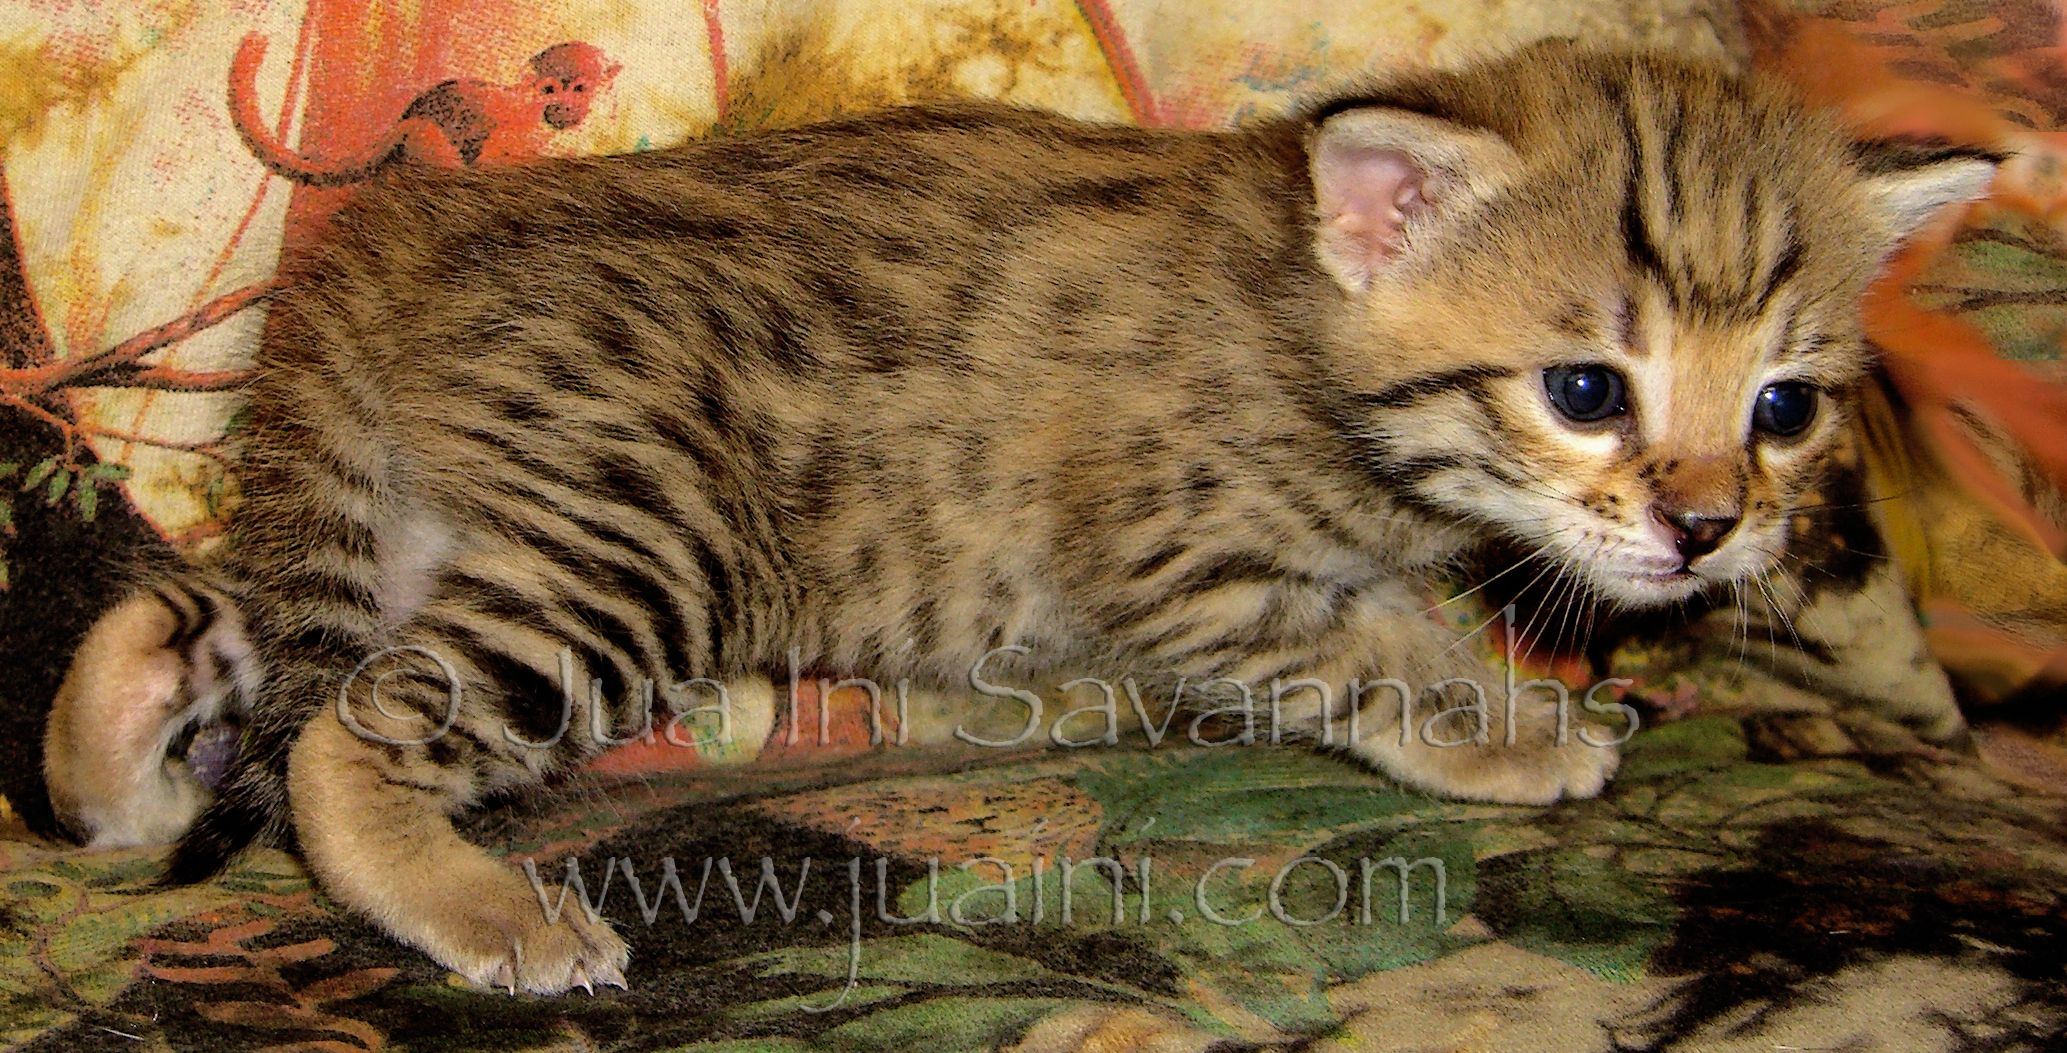 Female Golden Bst F2b Savannah Kitten 2 1 2 Weeks Old Starting To Explore 6 17 14